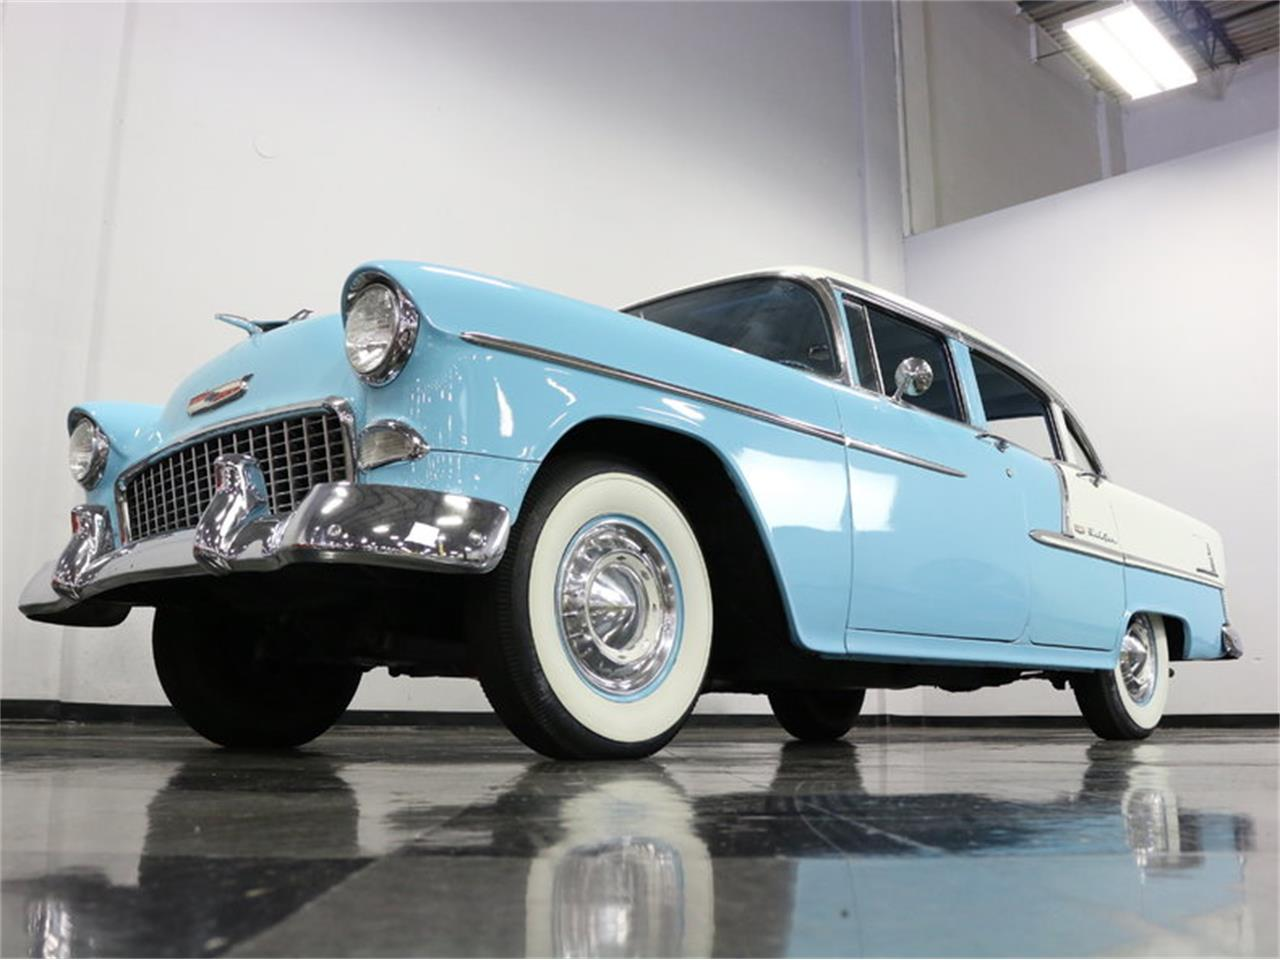 Large Picture of '55 Chevrolet Bel Air - $25,995.00 Offered by Streetside Classics - Dallas / Fort Worth - LSOT